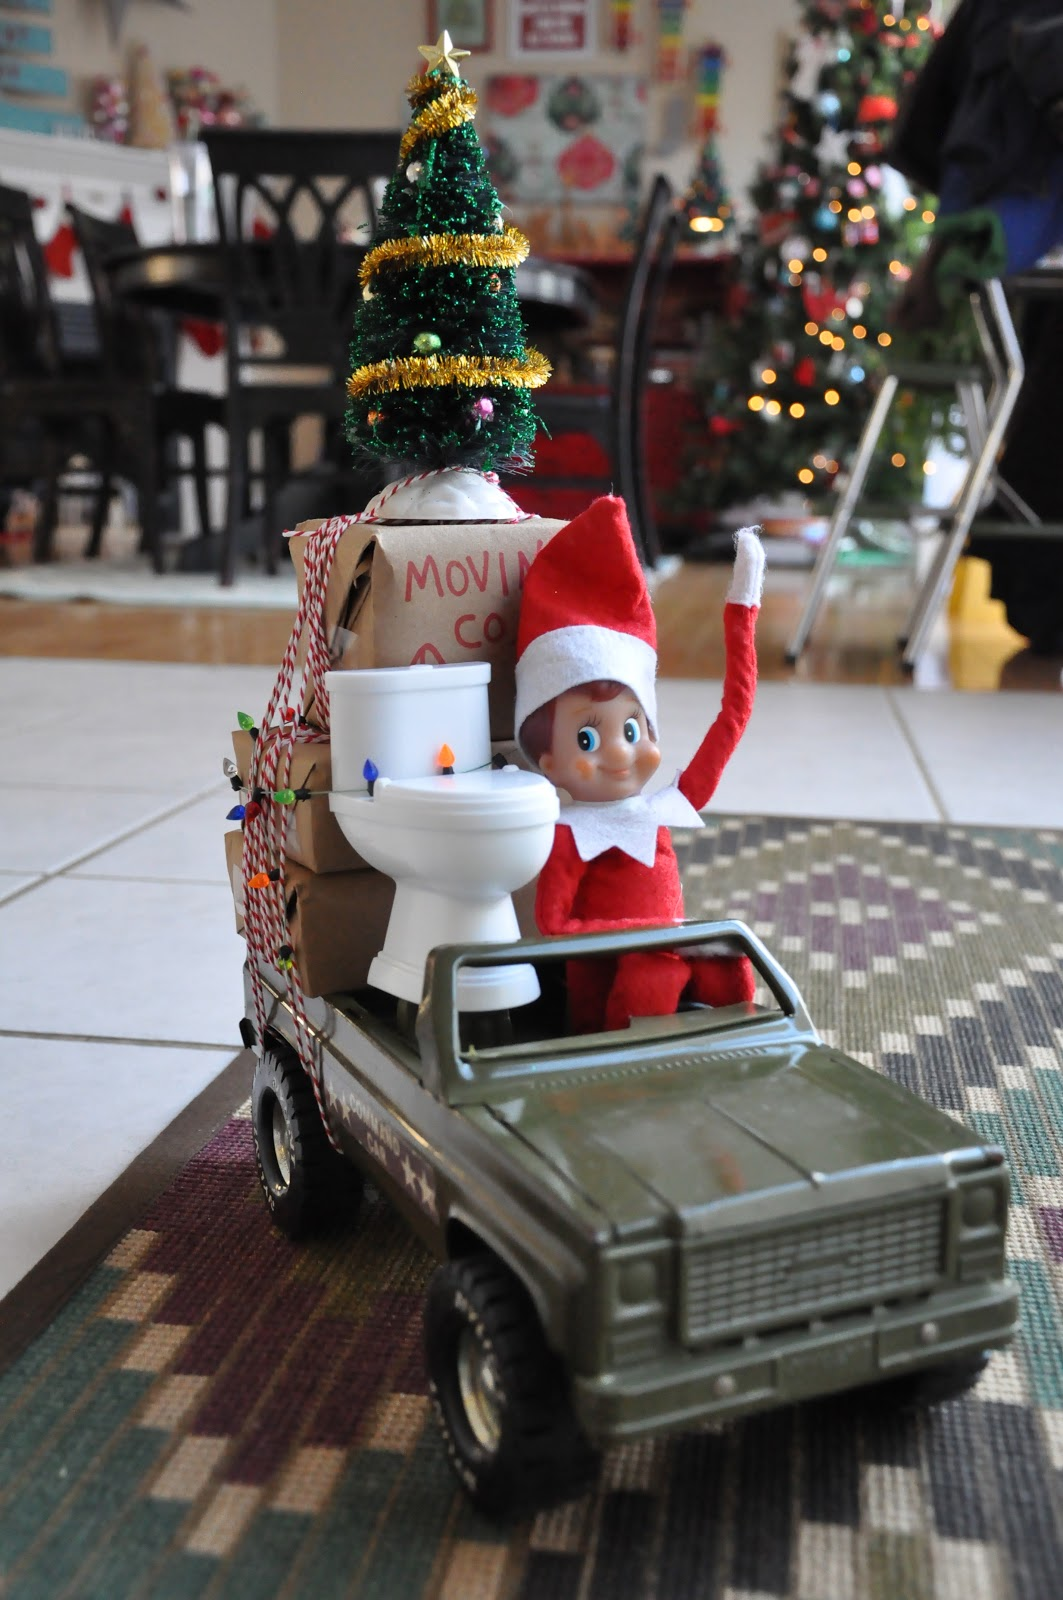 MORE Ideas for Elf on the Shelf: Elf on Shelf Ideas 25 Days of Elf on the Shelf Ideas Elf on the Shelf Ideas for Arrival Elf o. 25 Funny Elf on the Shelf Ideas - These Funny Elf on the Shelf Ideas came from our very creative forum members.